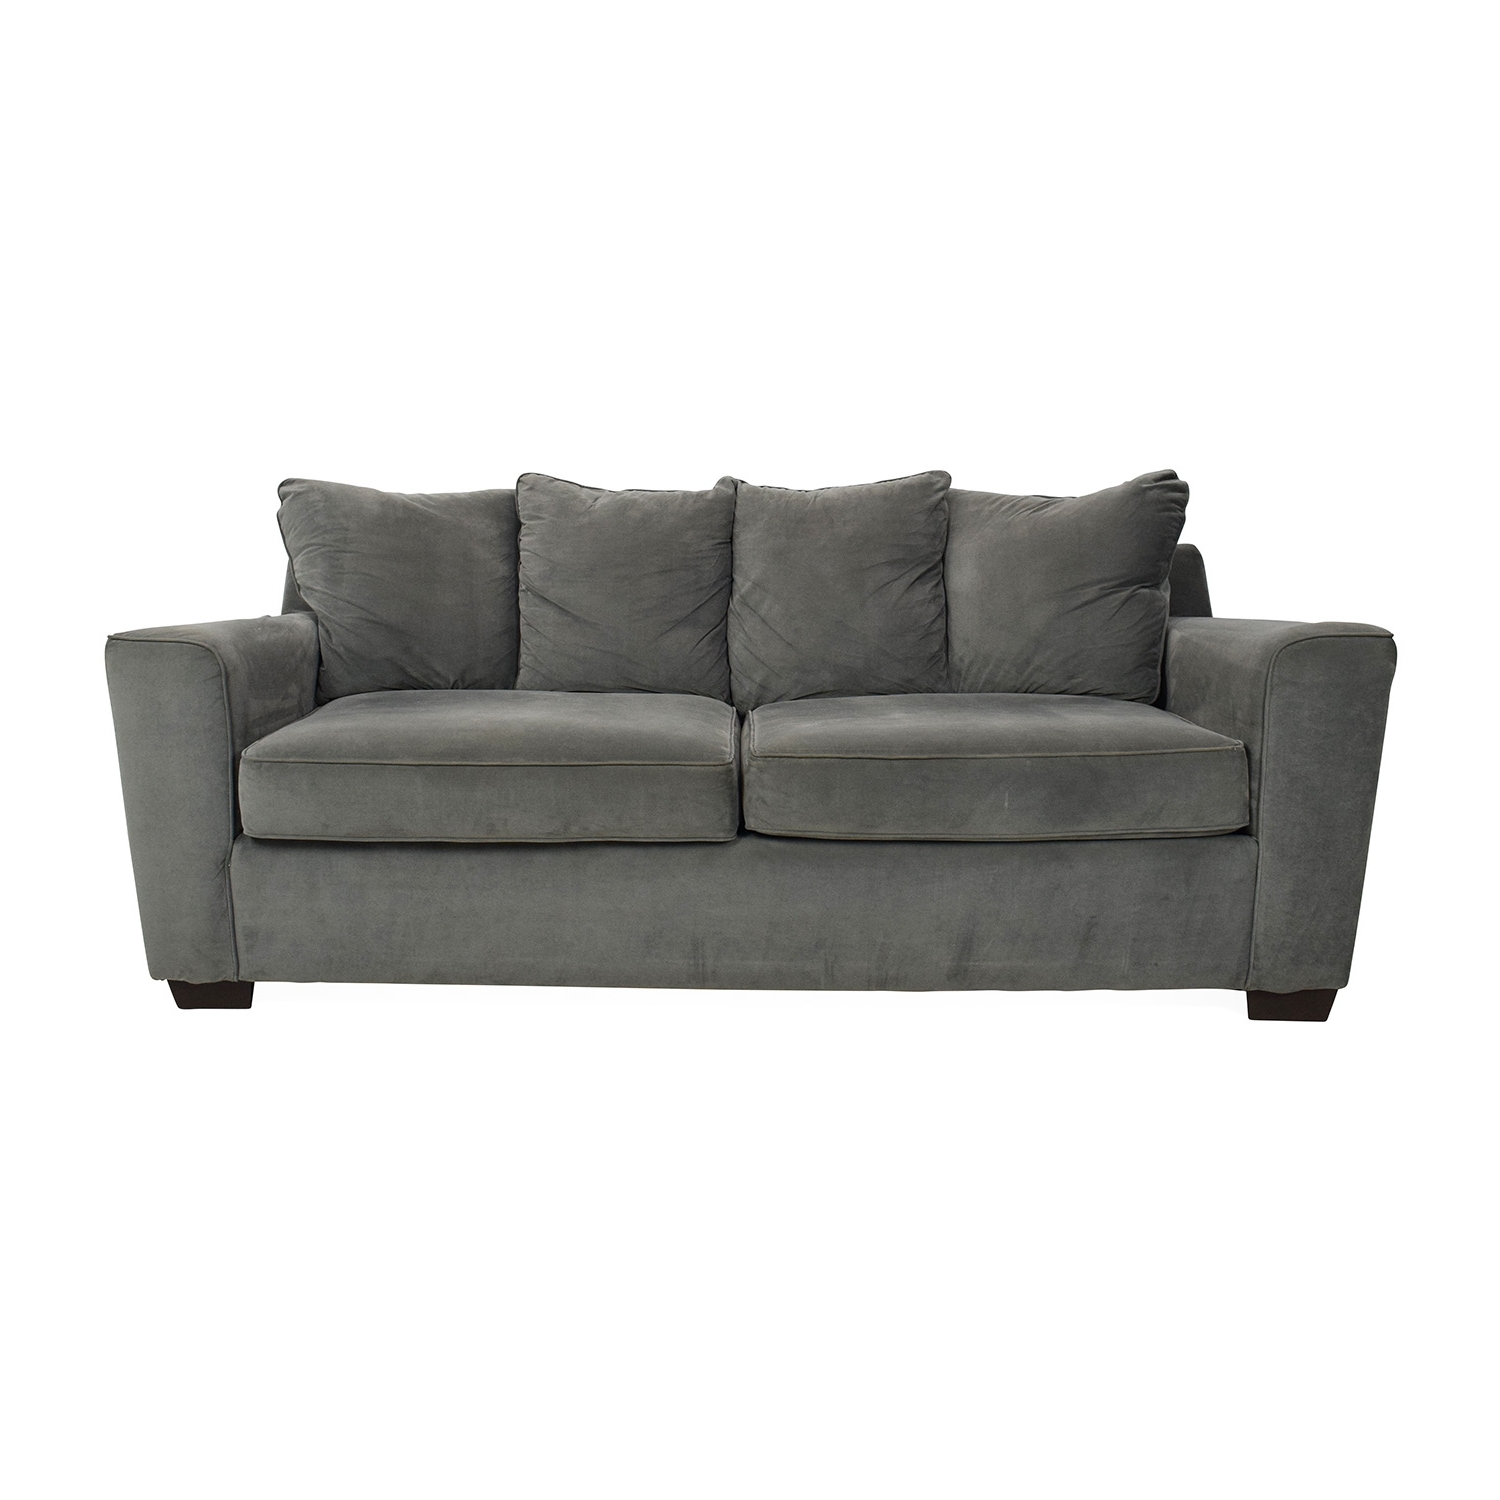 [%53% Off – Jennifer Convertibles Jennifer Convertibles Grey Couch Pertaining To Recent Jennifer Sofas|Jennifer Sofas Inside Best And Newest 53% Off – Jennifer Convertibles Jennifer Convertibles Grey Couch|Trendy Jennifer Sofas Inside 53% Off – Jennifer Convertibles Jennifer Convertibles Grey Couch|Most Current 53% Off – Jennifer Convertibles Jennifer Convertibles Grey Couch Intended For Jennifer Sofas%] (View 4 of 20)